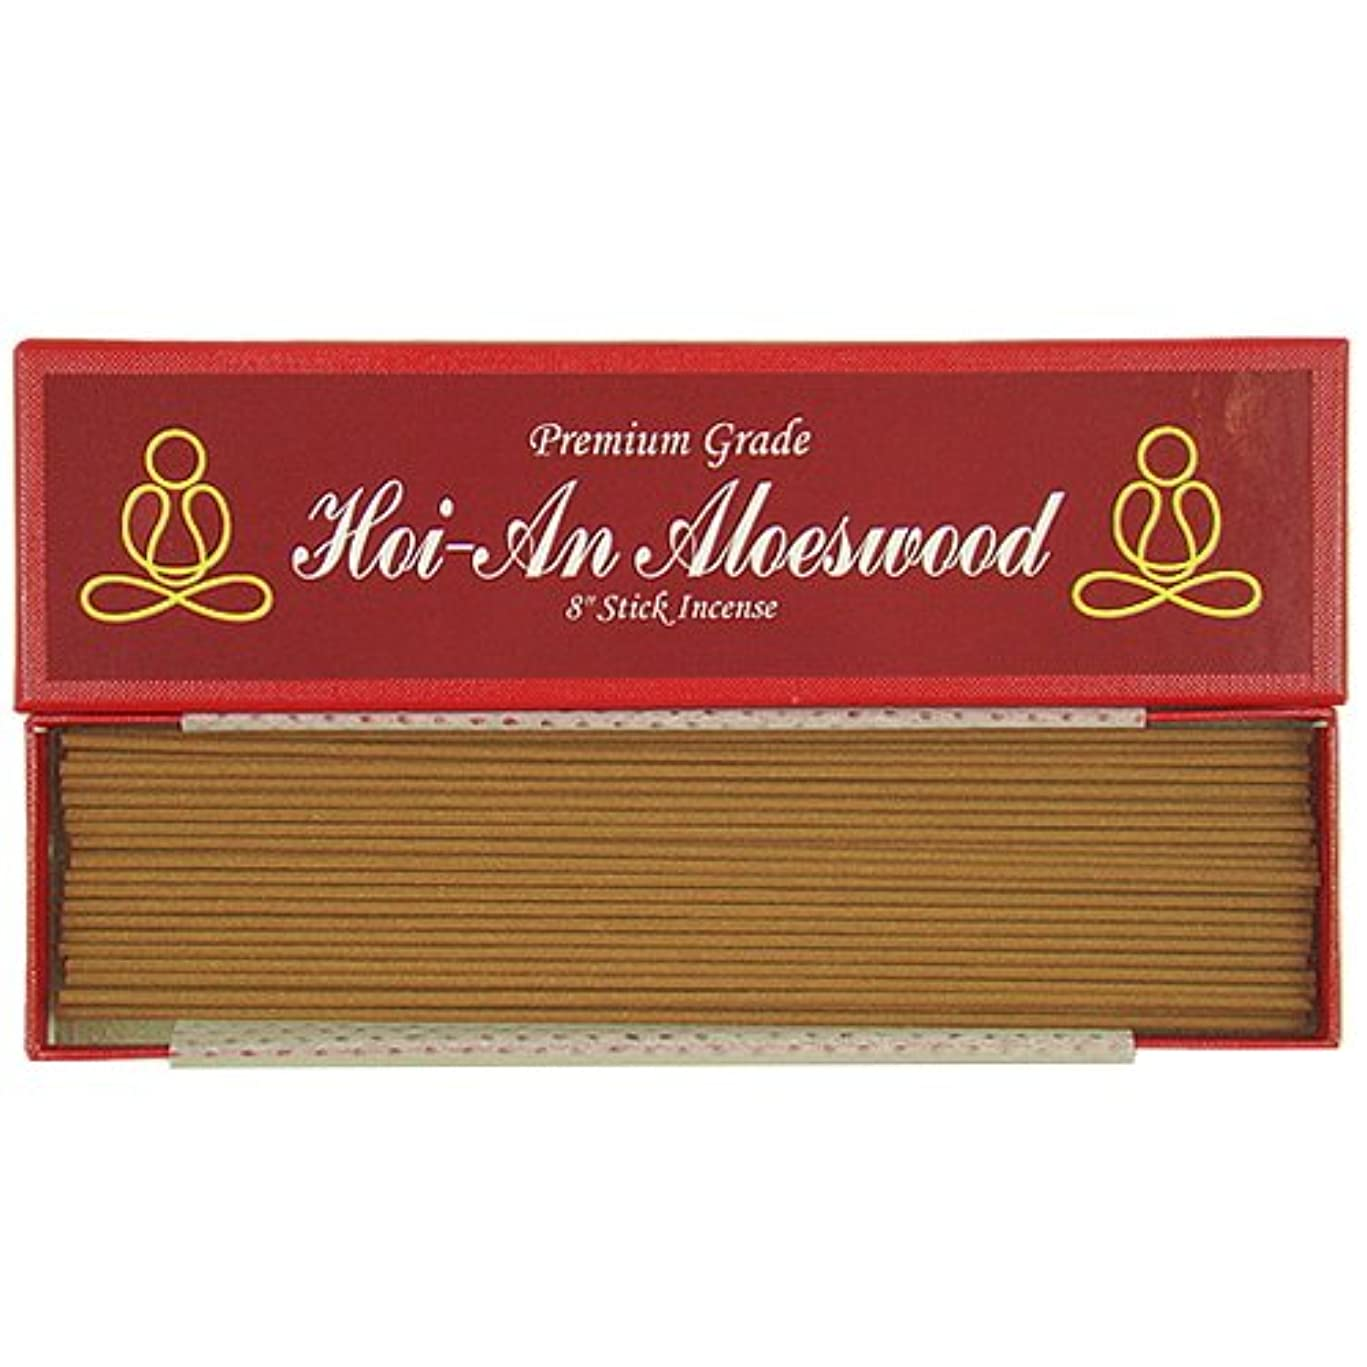 特定のオーストラリア印象プレミアムVietnamese hoi-an Aloeswood – 8 Inches Stick Incense – 100 % Natural – g054s